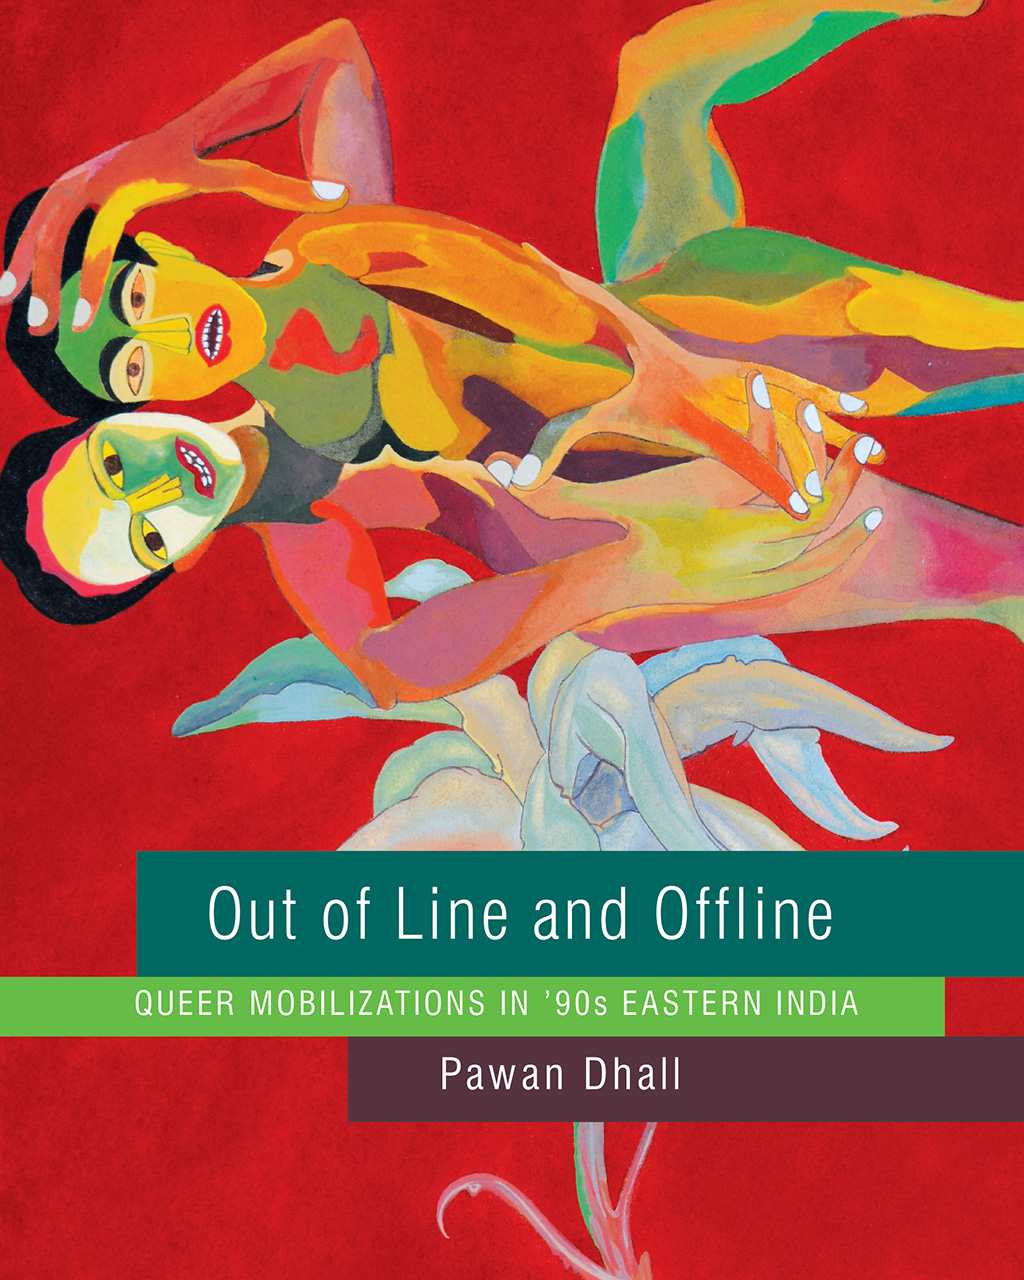 Out of Line and Offline: Queer Mobilizations in '90s Eastern India